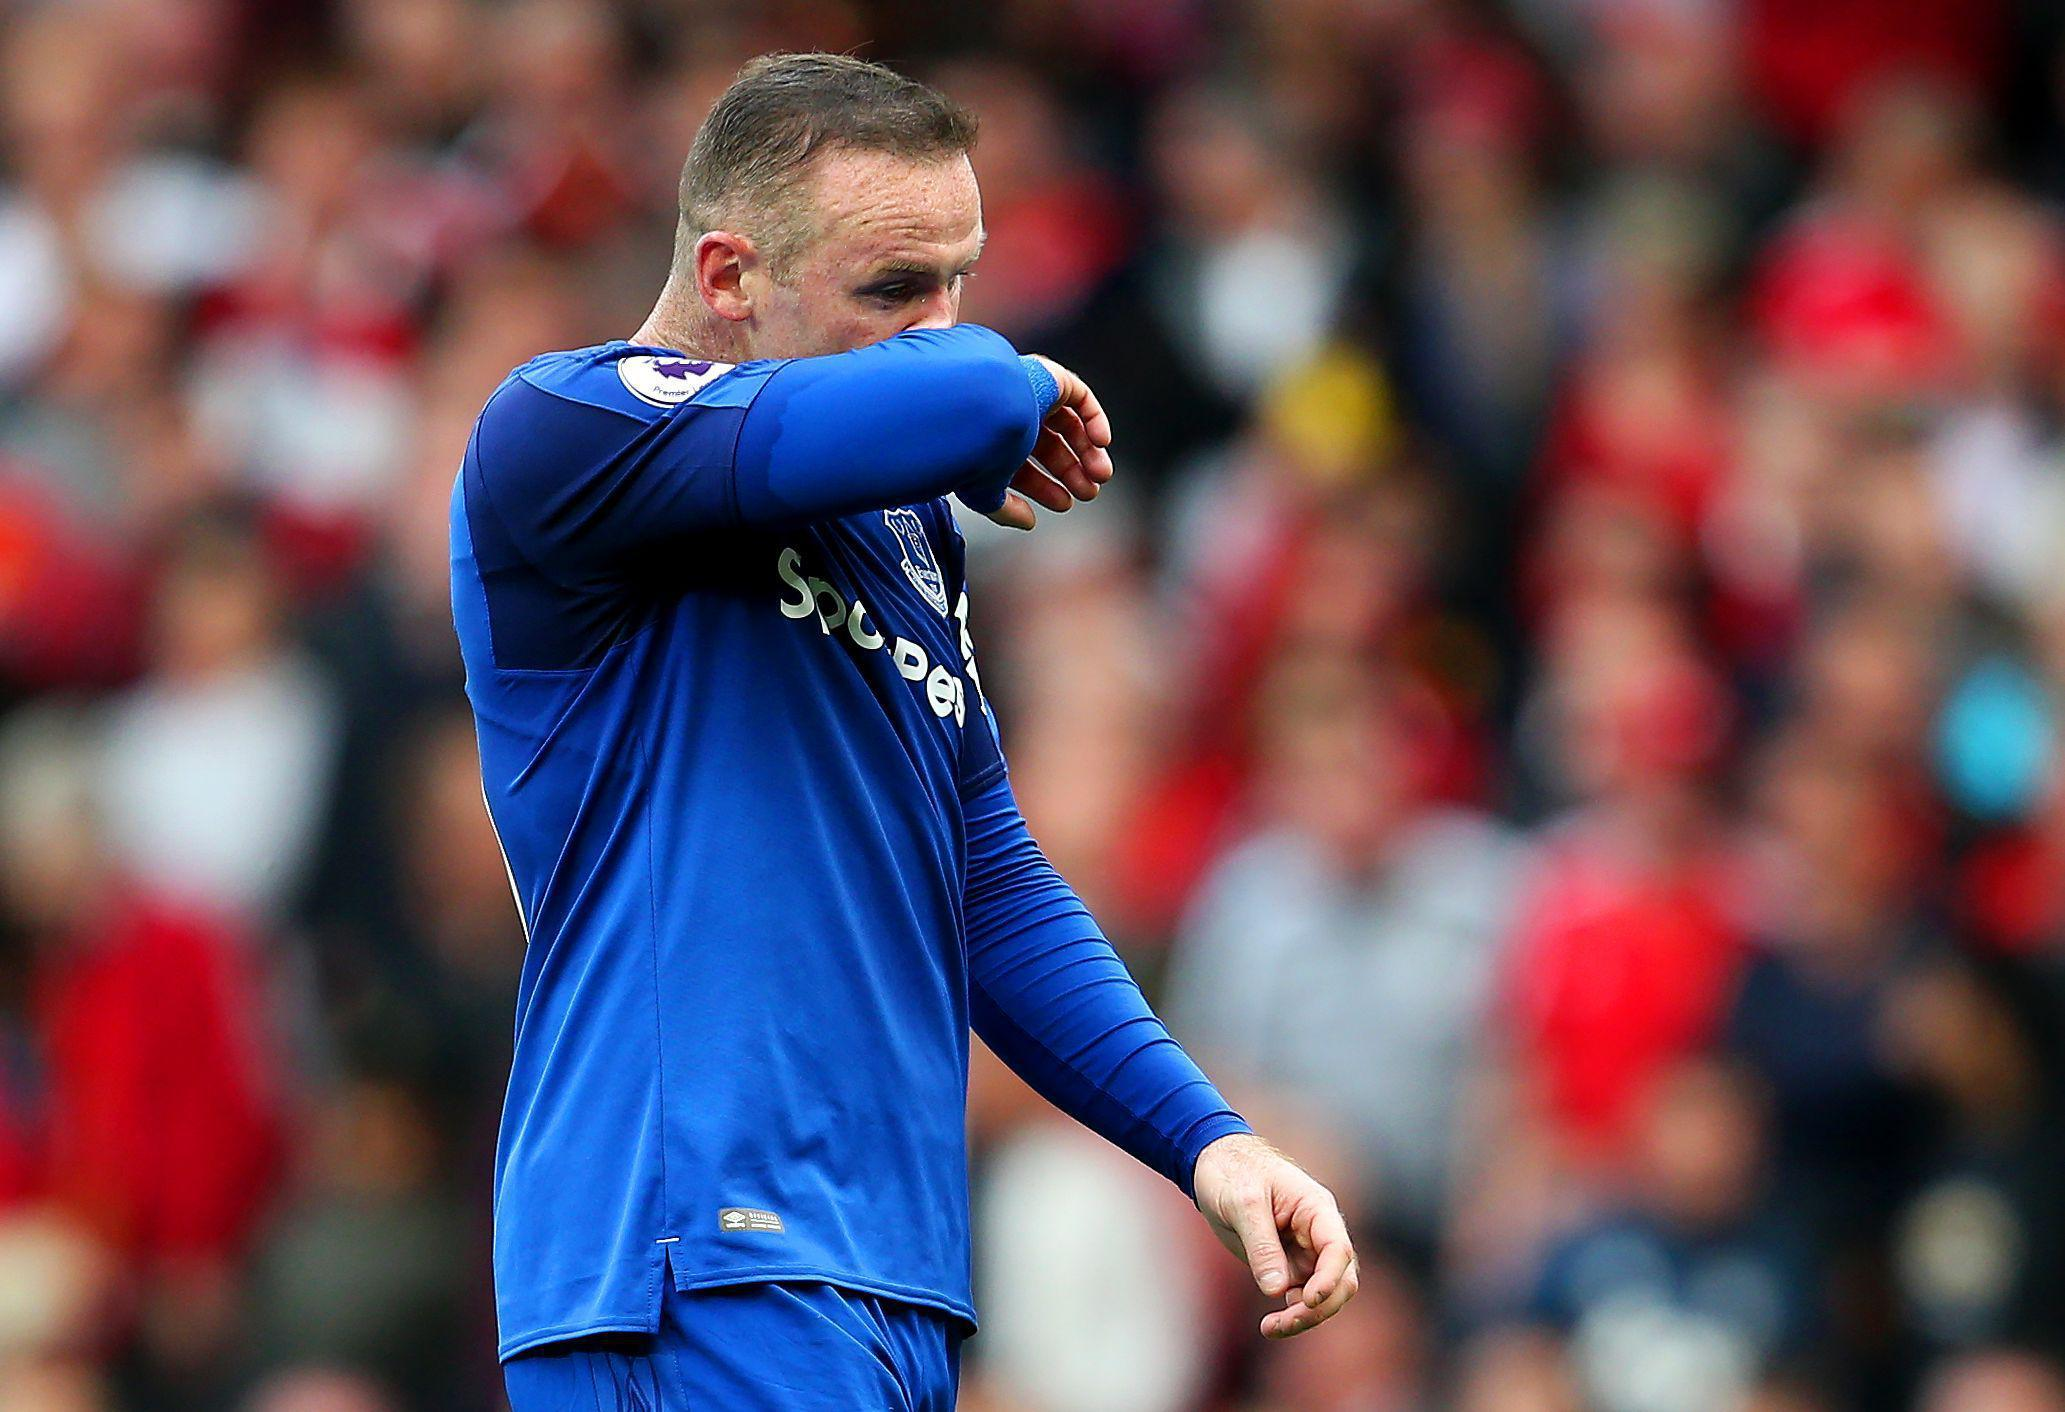 Wayne Rooney endured an horrific return to Old Trafford in a 4-0 thumping